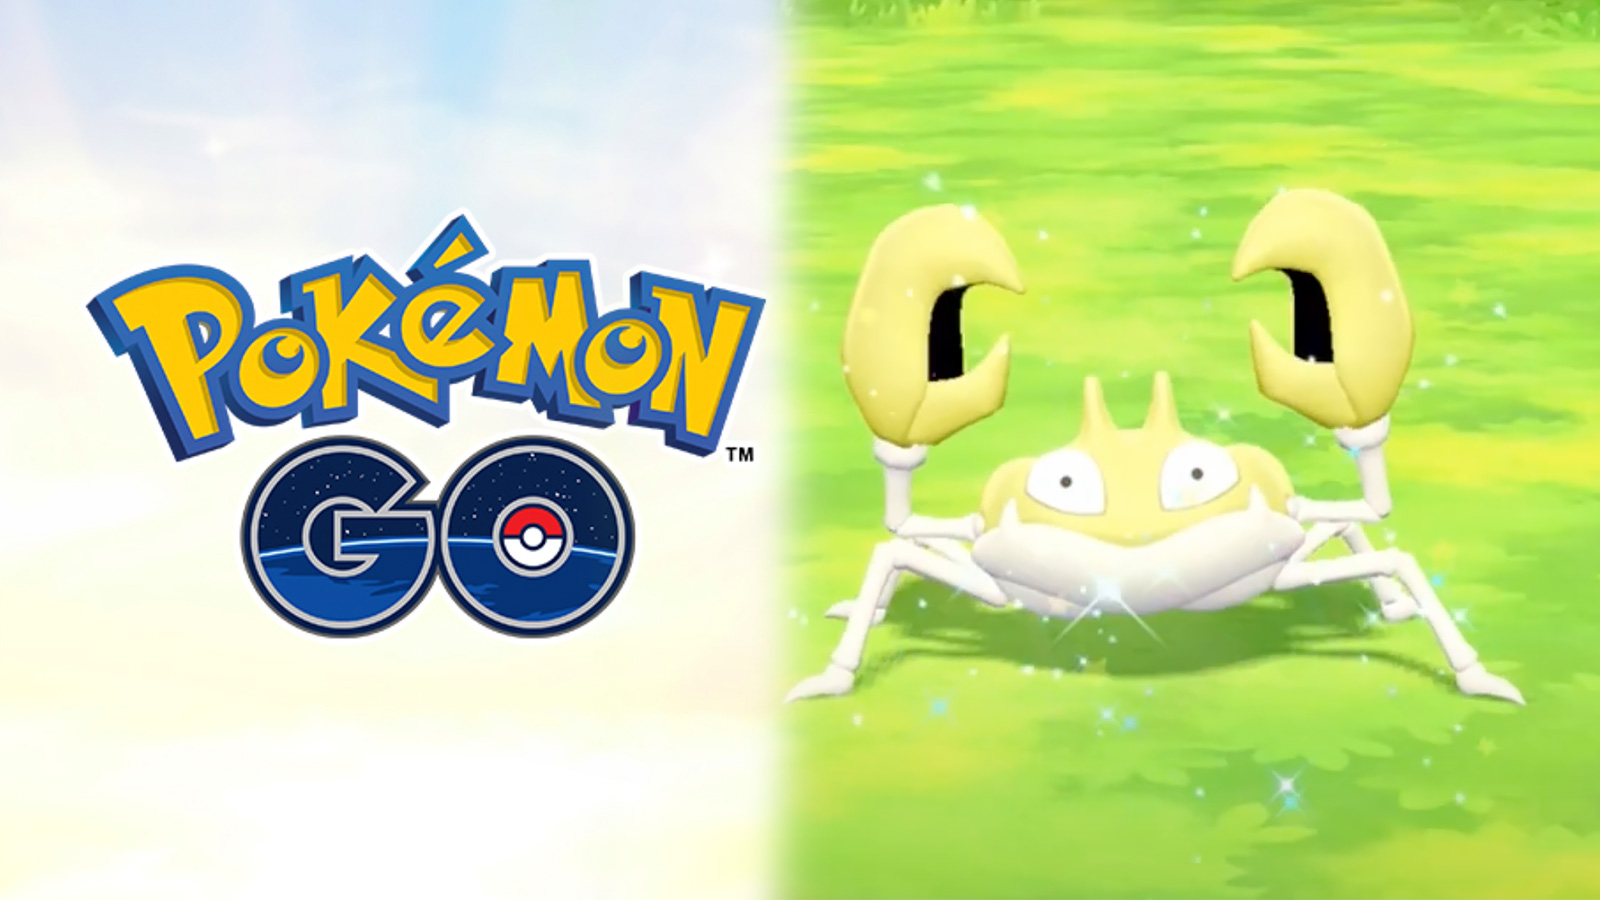 Screenshot of Pokemon Go logo next to Shiny Krabby in Lets Go Pikachu.